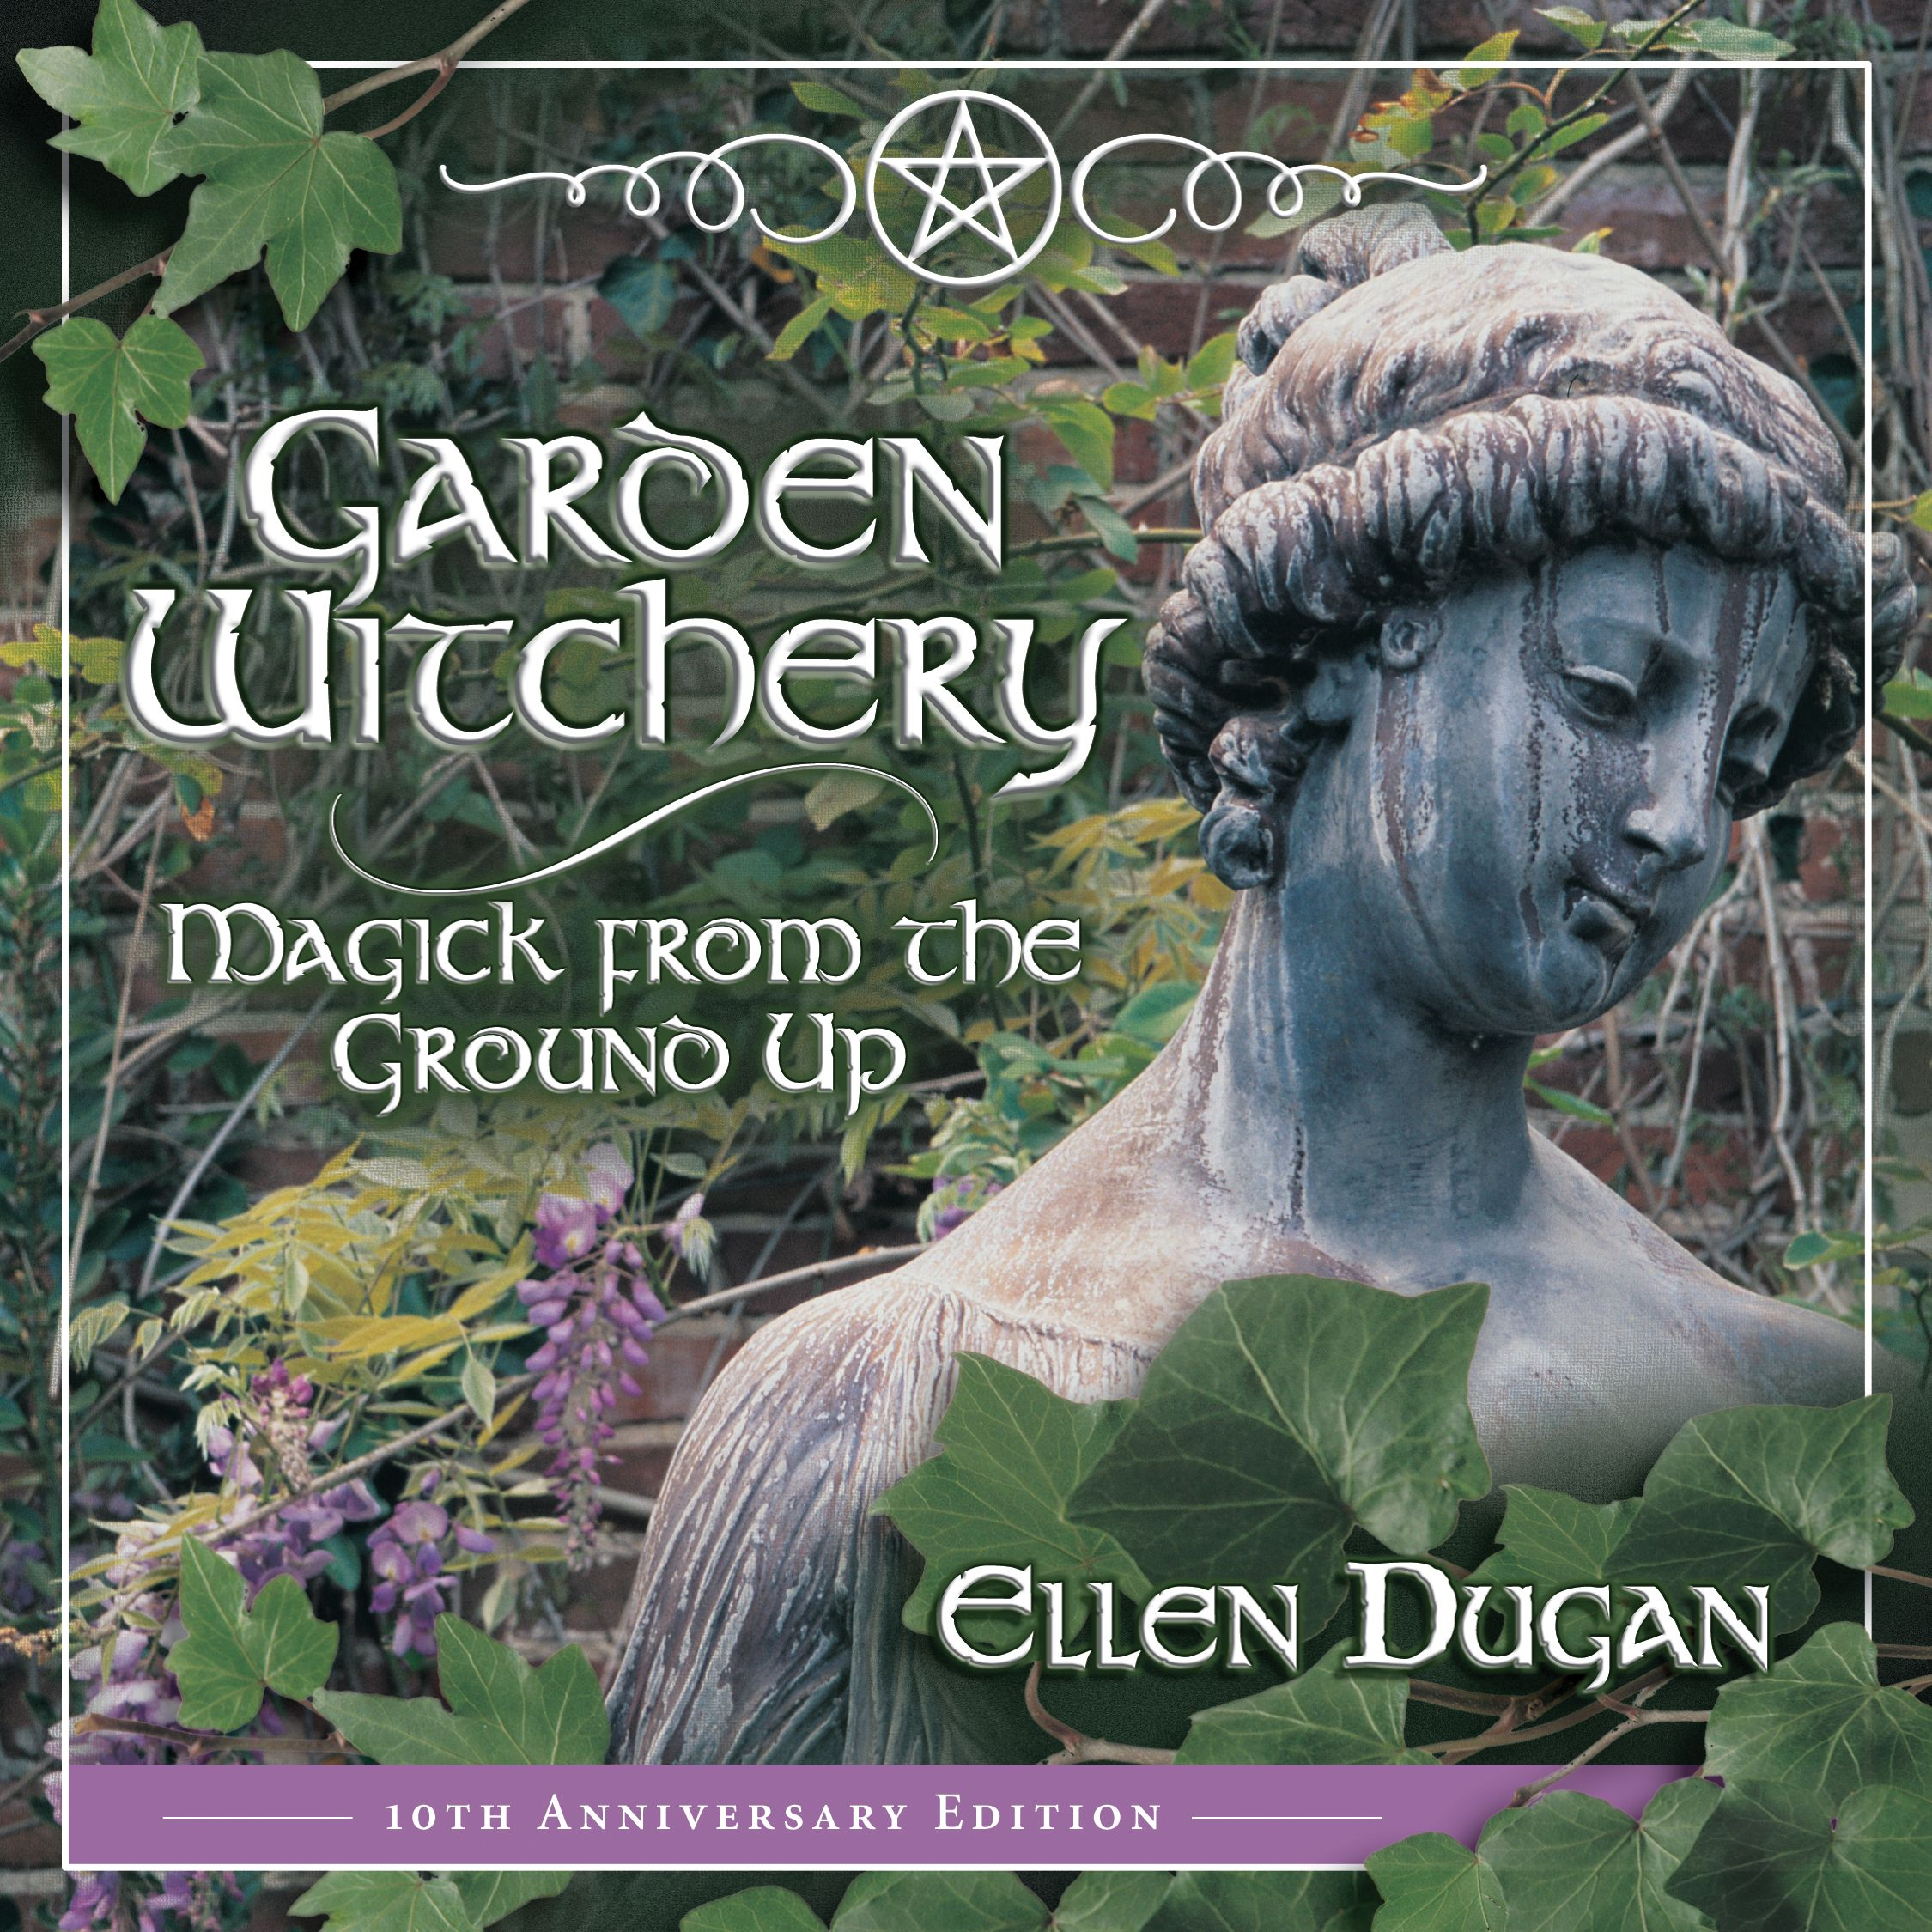 10th Anniversary Edition of Garden Witchery! Release date September 2013  This edition has a new never before published chapter!